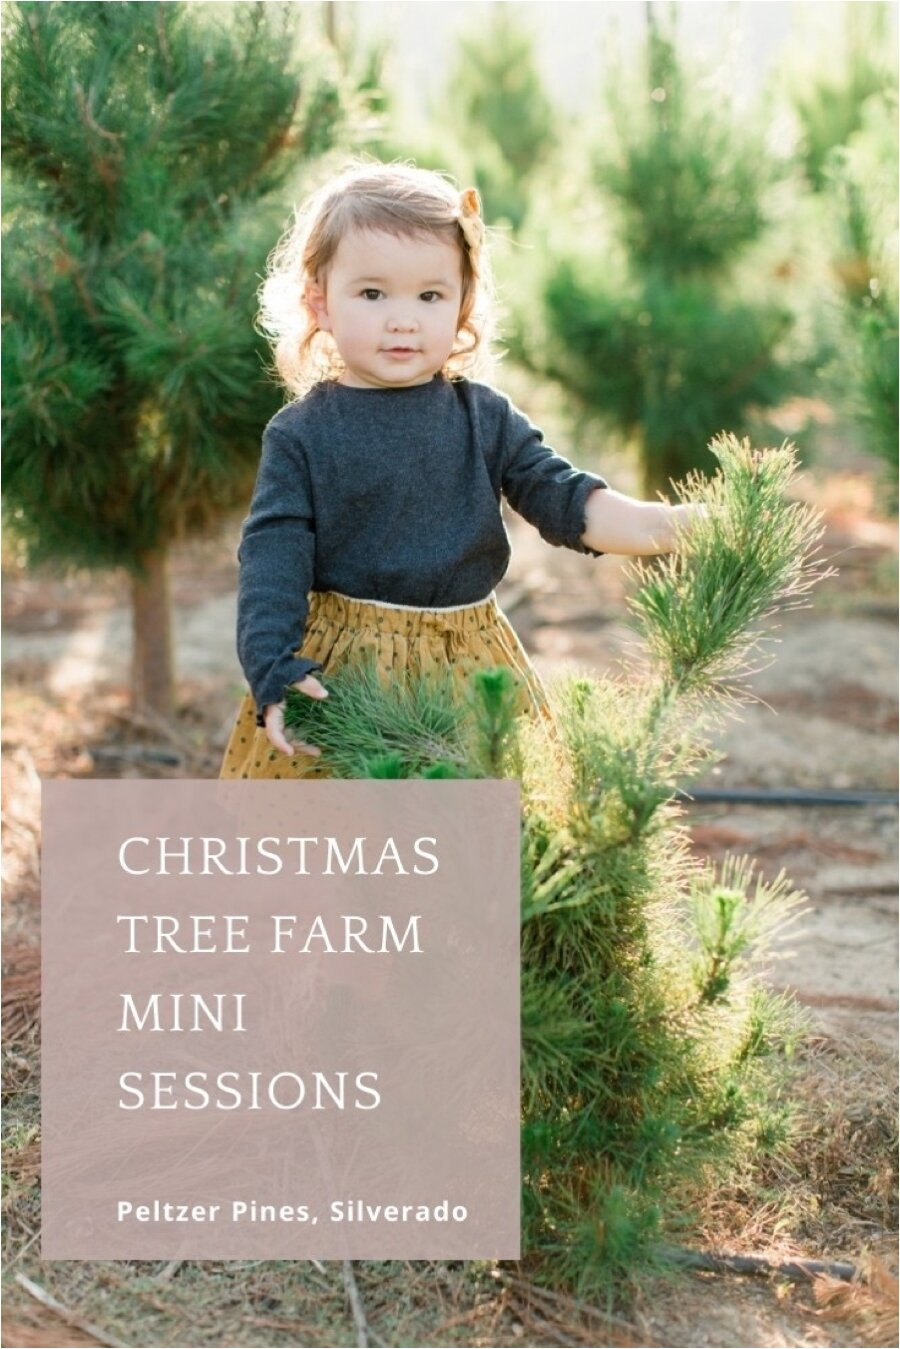 Christmas Tree Farm Mini Sessions October 25th Taylor Kinzie Photography